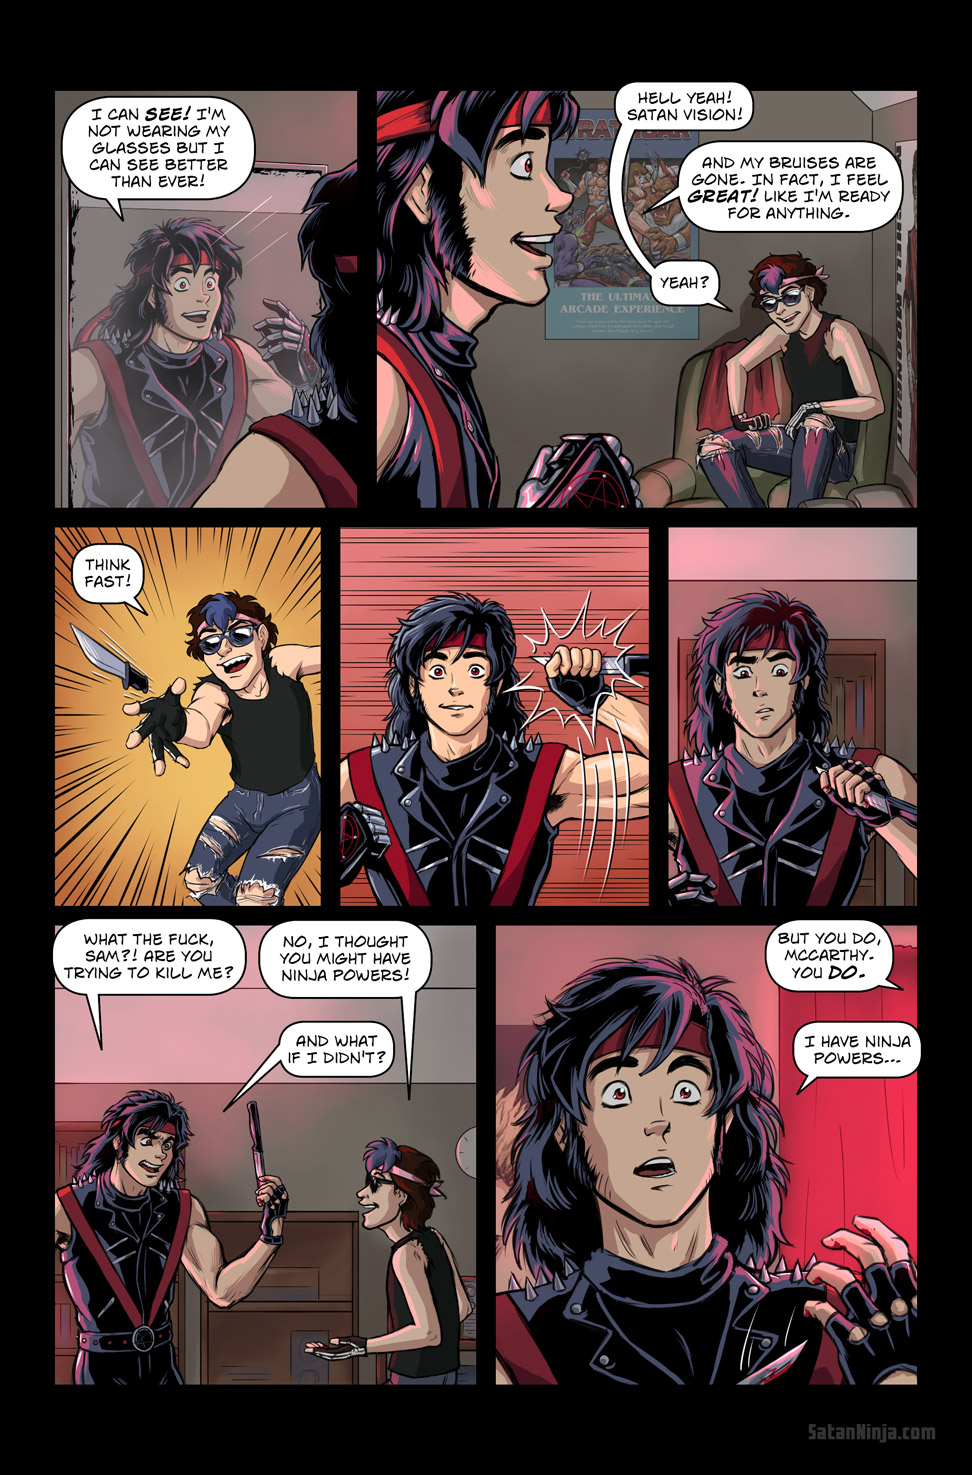 Issue 3, Page 1 - Think Fast